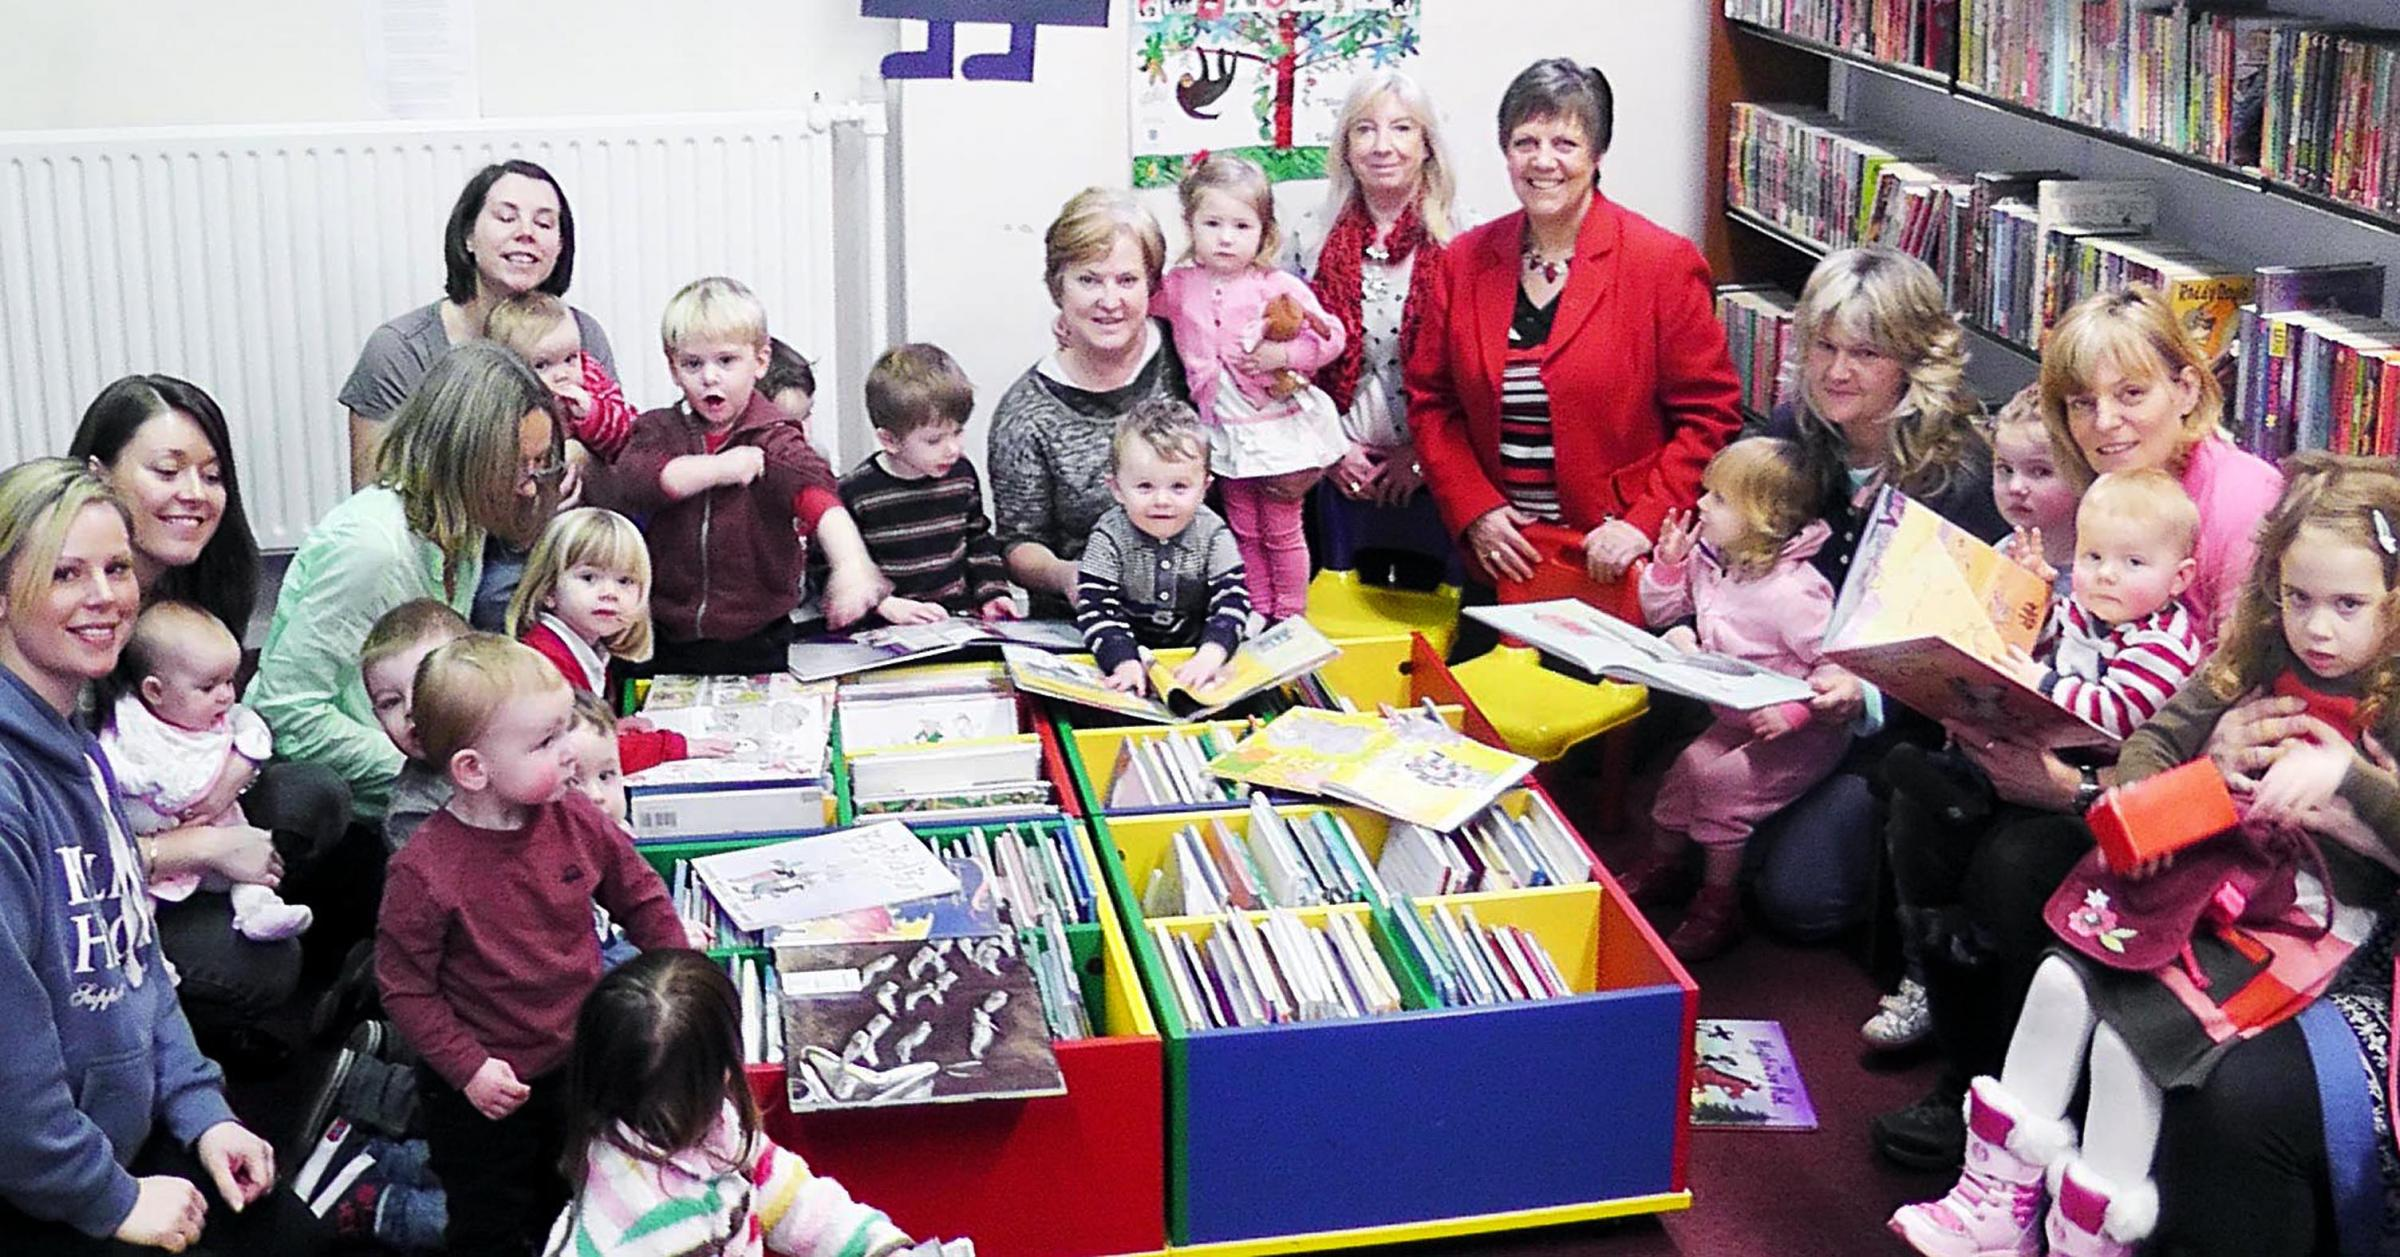 Julie Hilling MP, in the red jacket, with mothers and child minders from the Toddler Tales Group